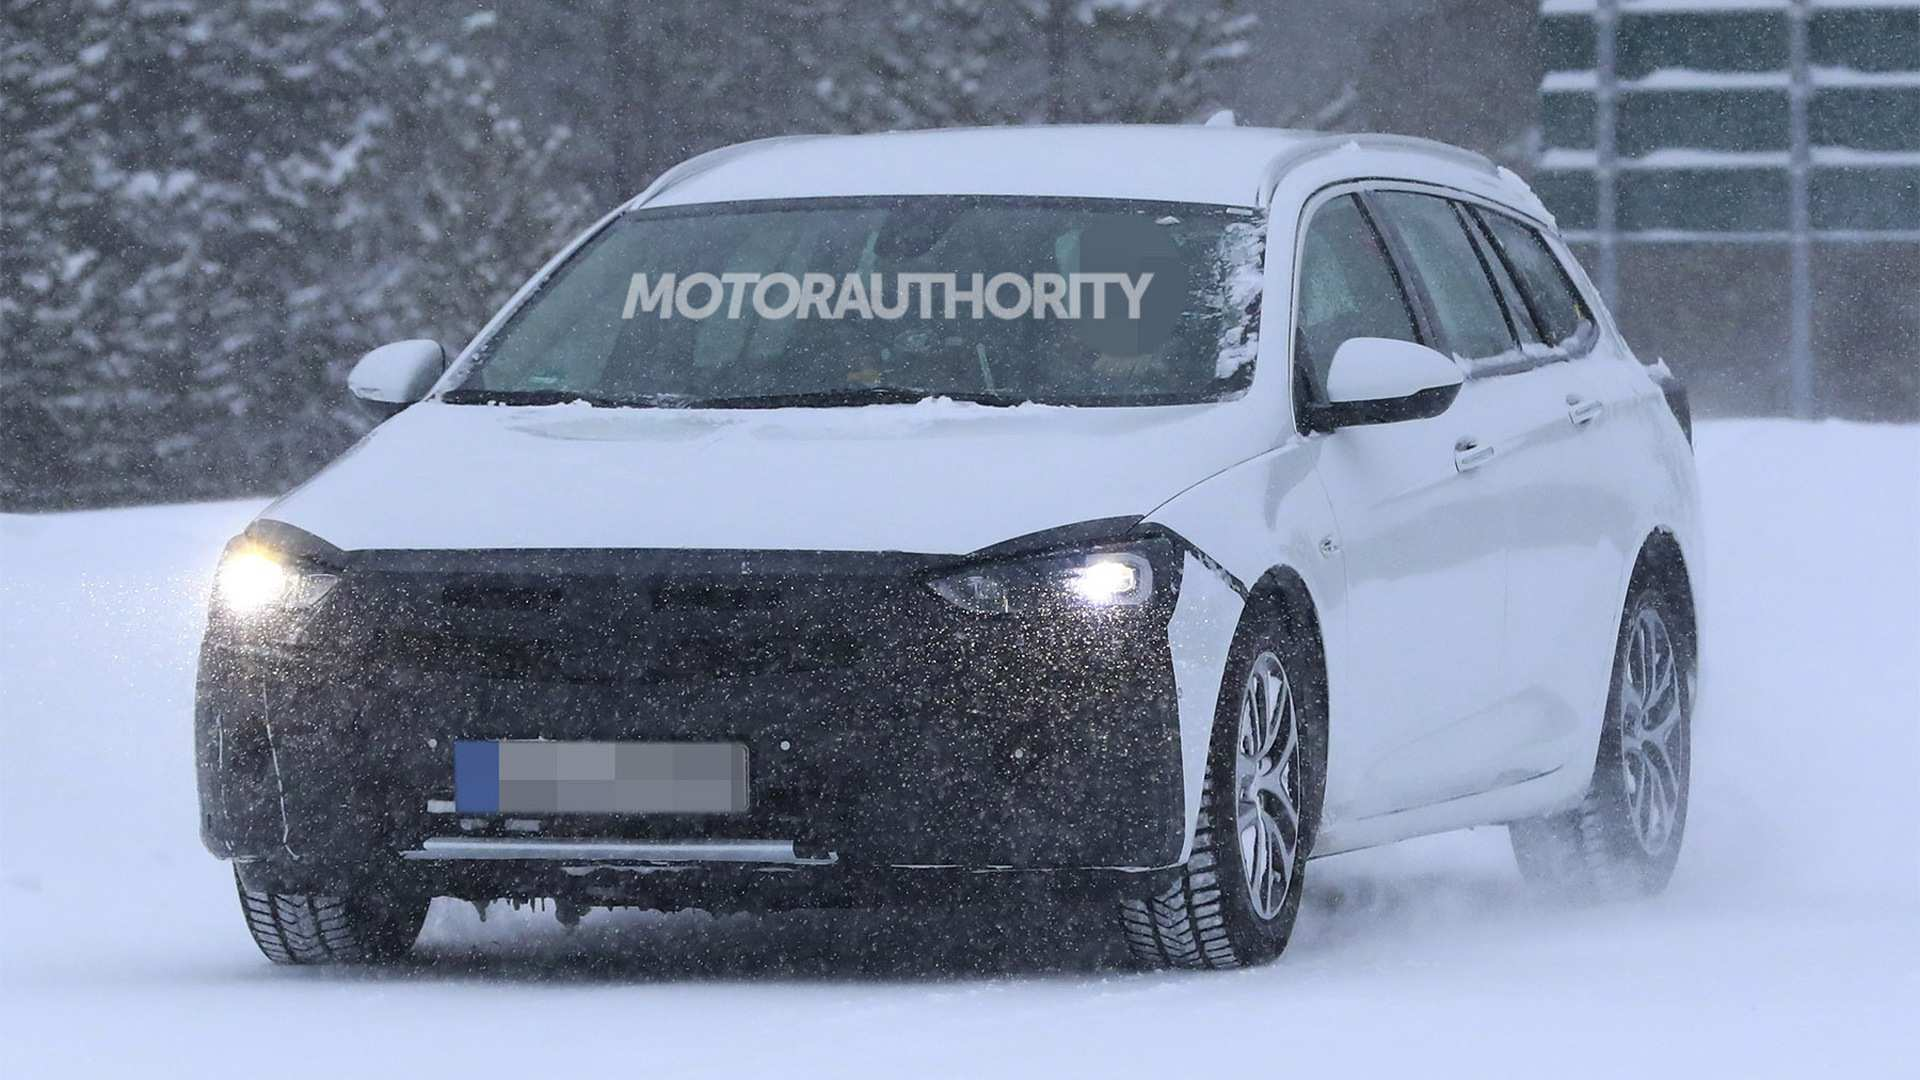 61 New Opel Insignia Opc 2020 Engine by Opel Insignia Opc 2020